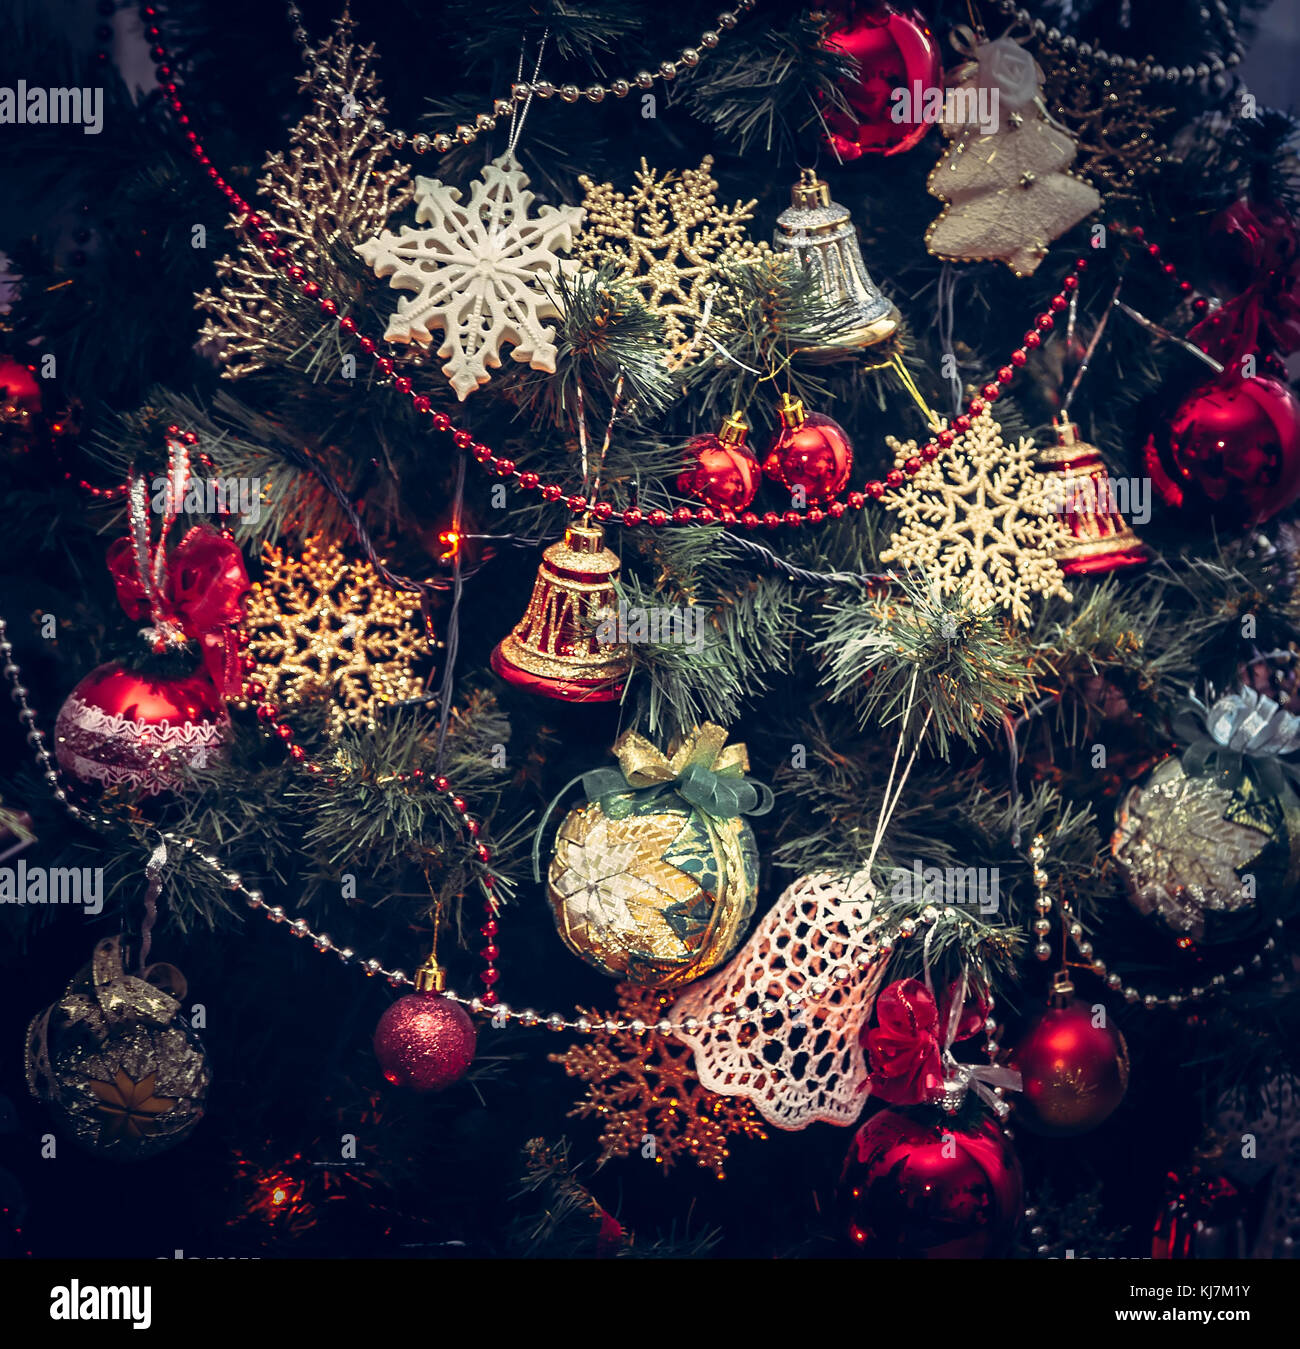 Vintage Christmas Background With Christmas Tree Decorations Stock Photo Alamy